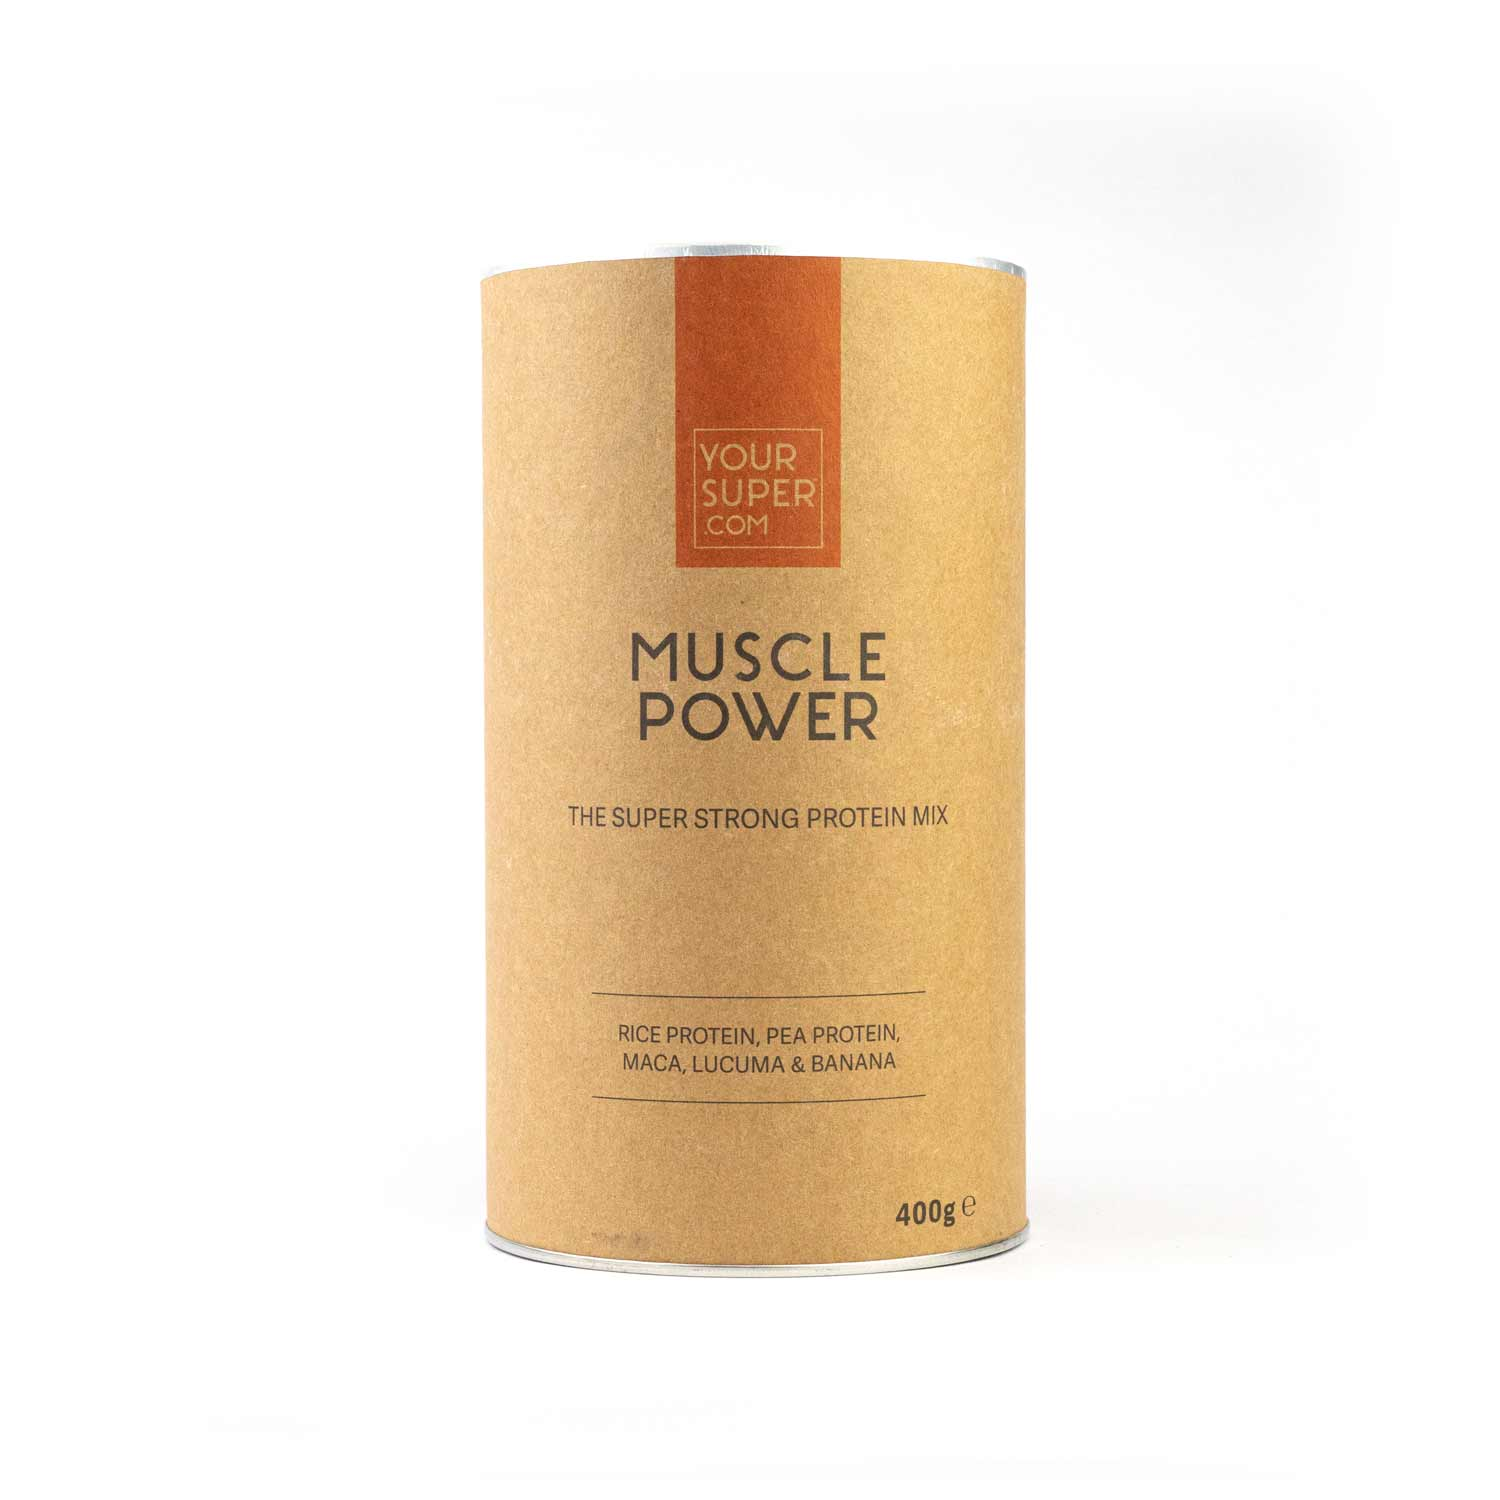 Your Superfoods Muscle Power Mix 400g - NEUROGOLD